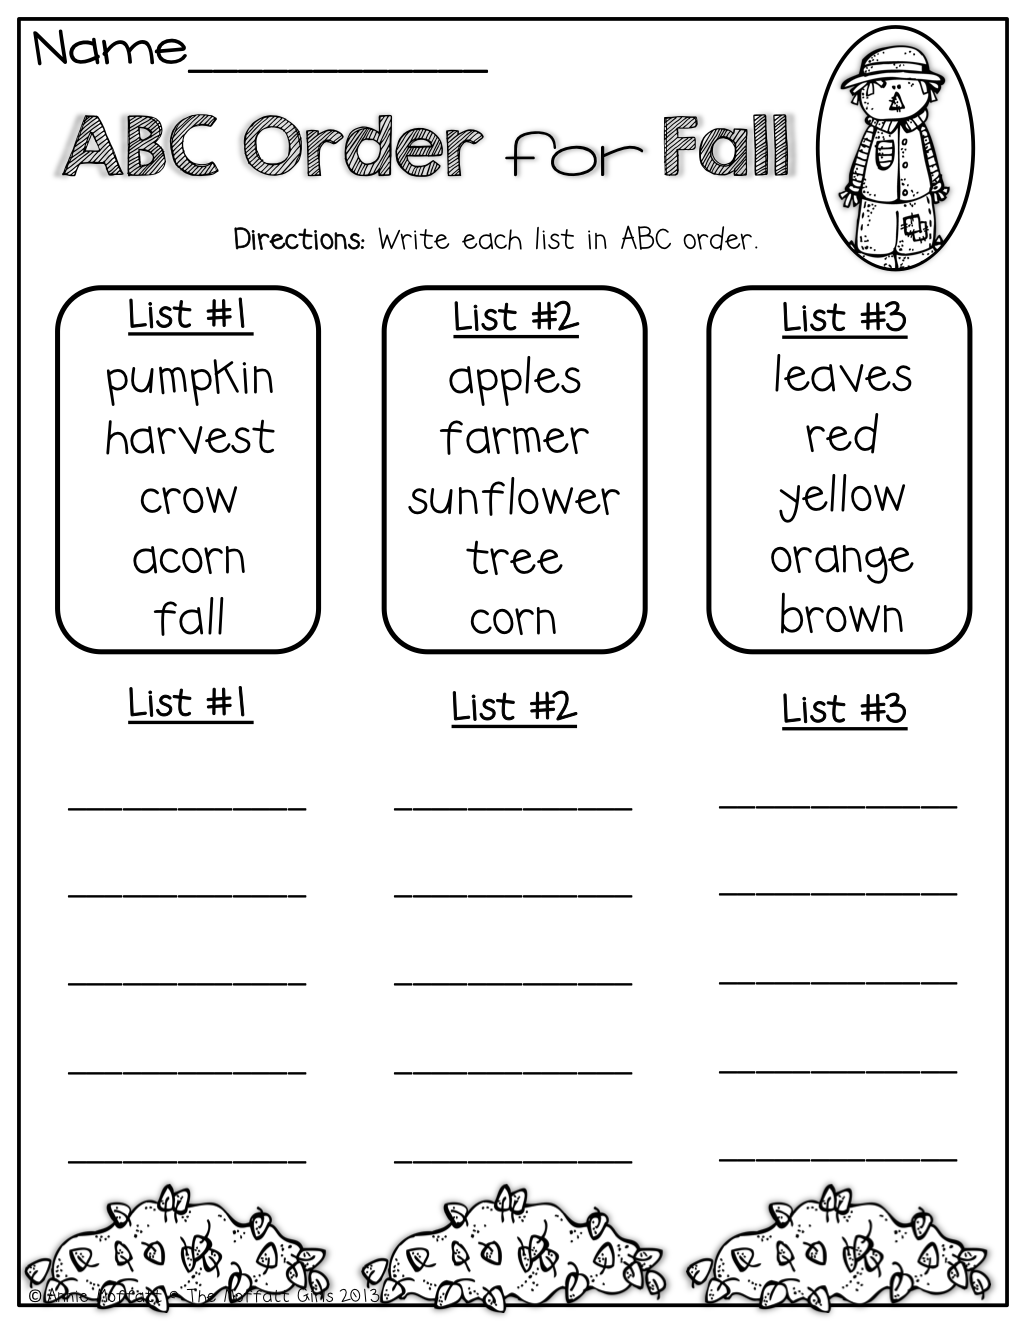 Abc Order For Fall Write Words On Popsicle Sticks For Easier Alphabetizing Can Color Code For